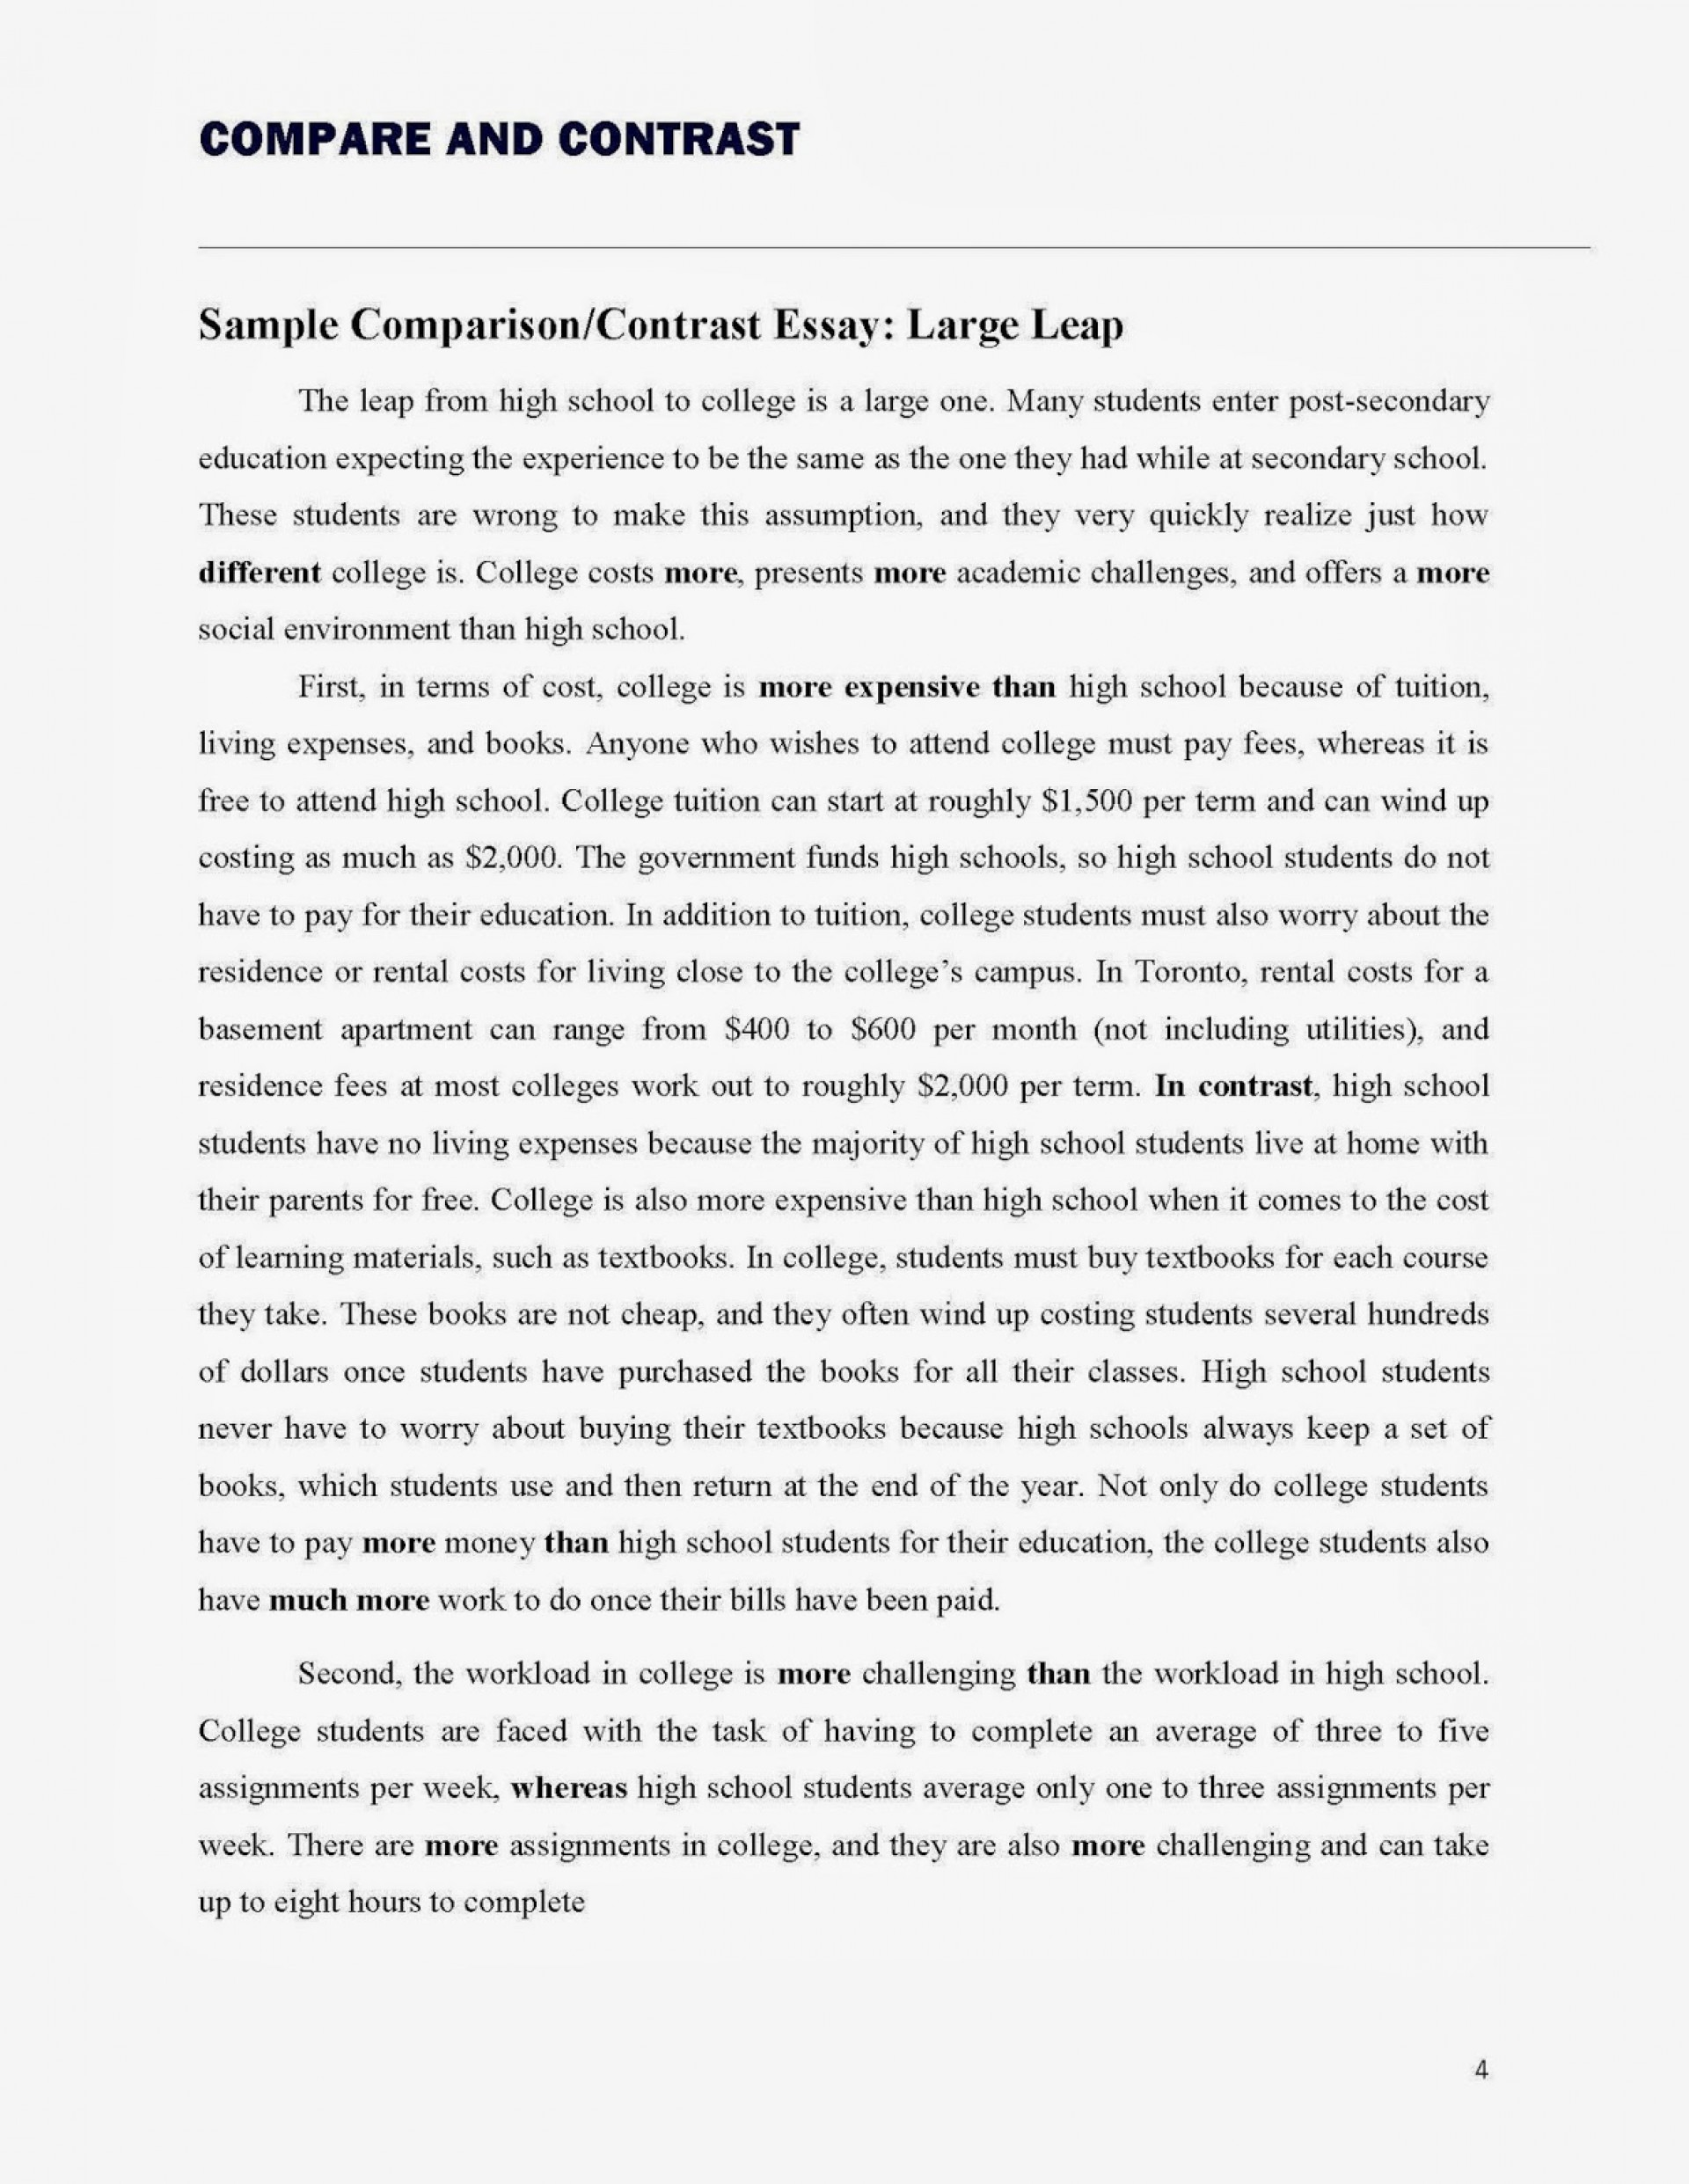 011 Compare And Contrast Essay Compareandcontrastessay Page 4h125 Frightening Introduction Paragraph Topics About Love Outline Example 1920